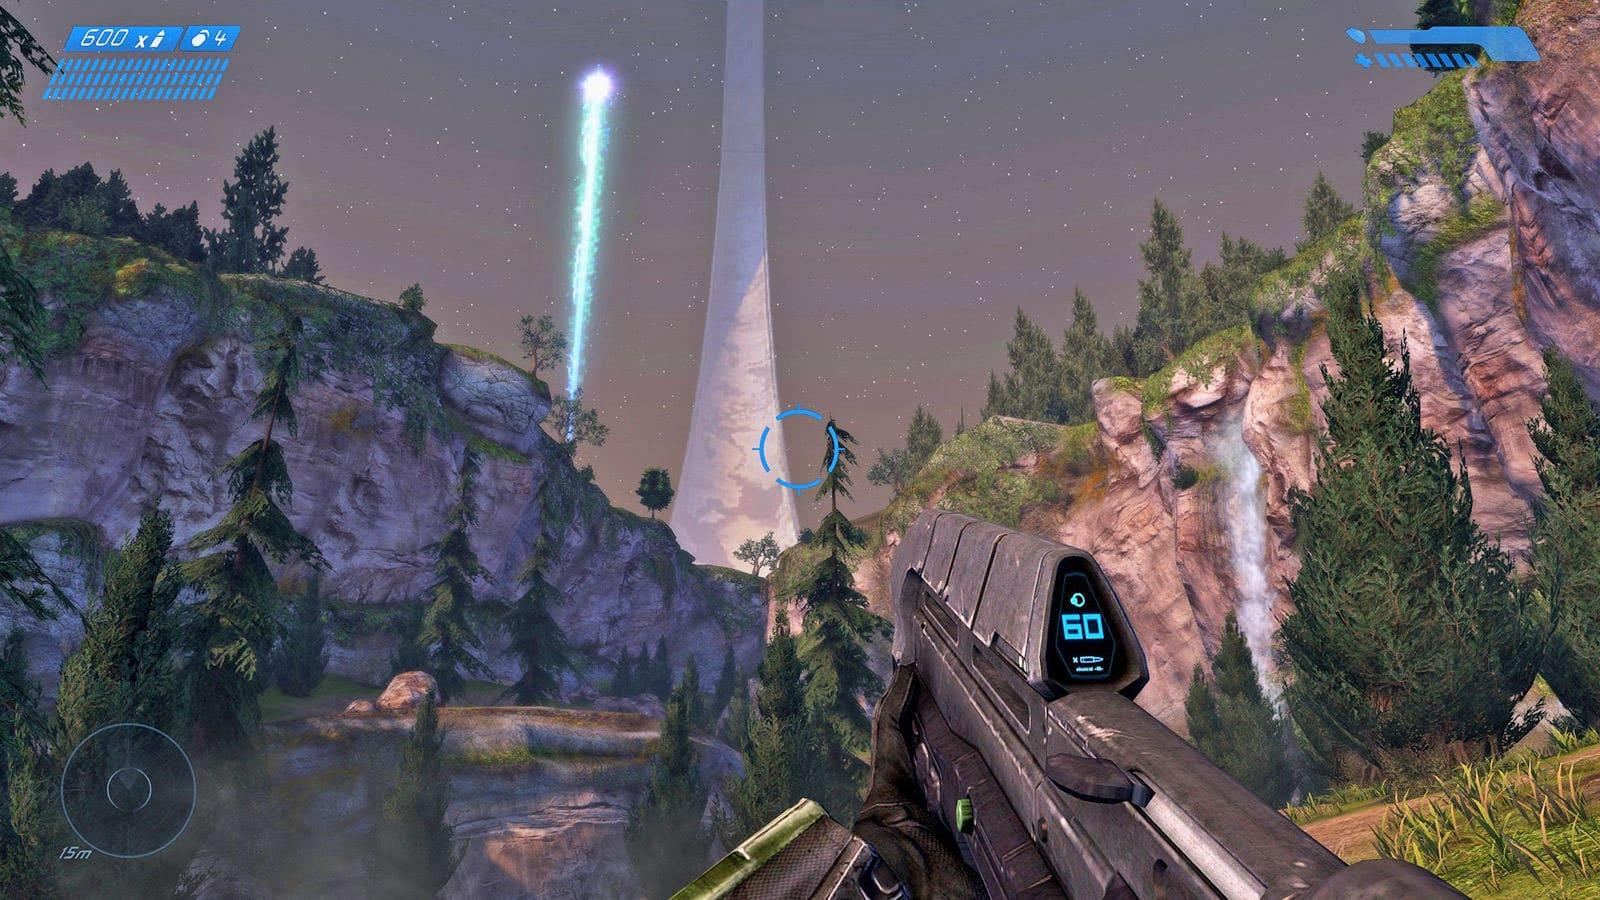 Halo: Combat Evolved' remaster is now available for PC   Engadget